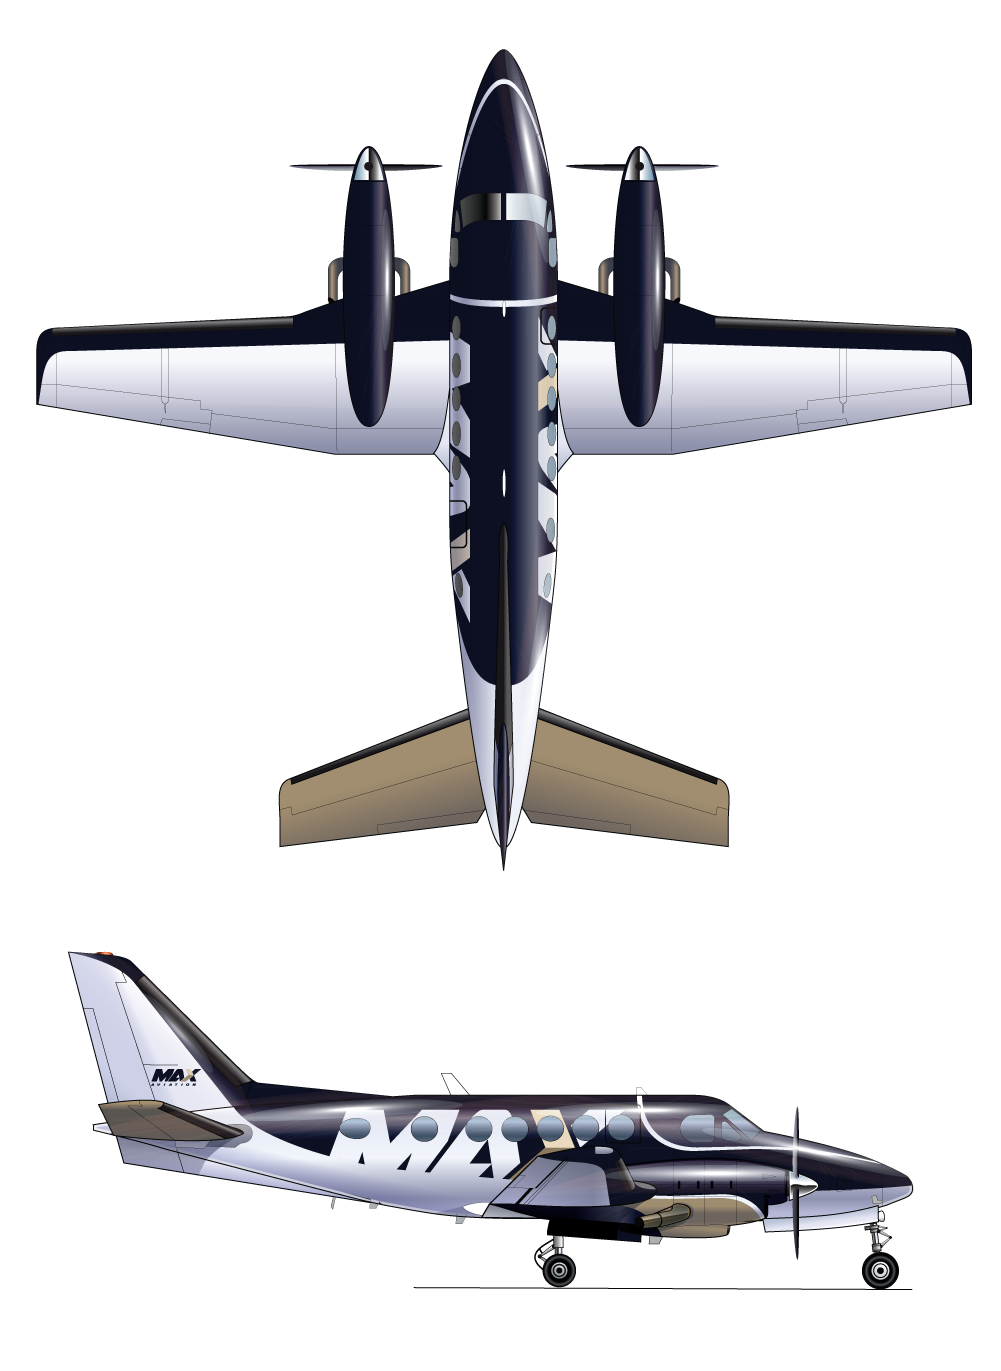 Beechcraft King Air B-100